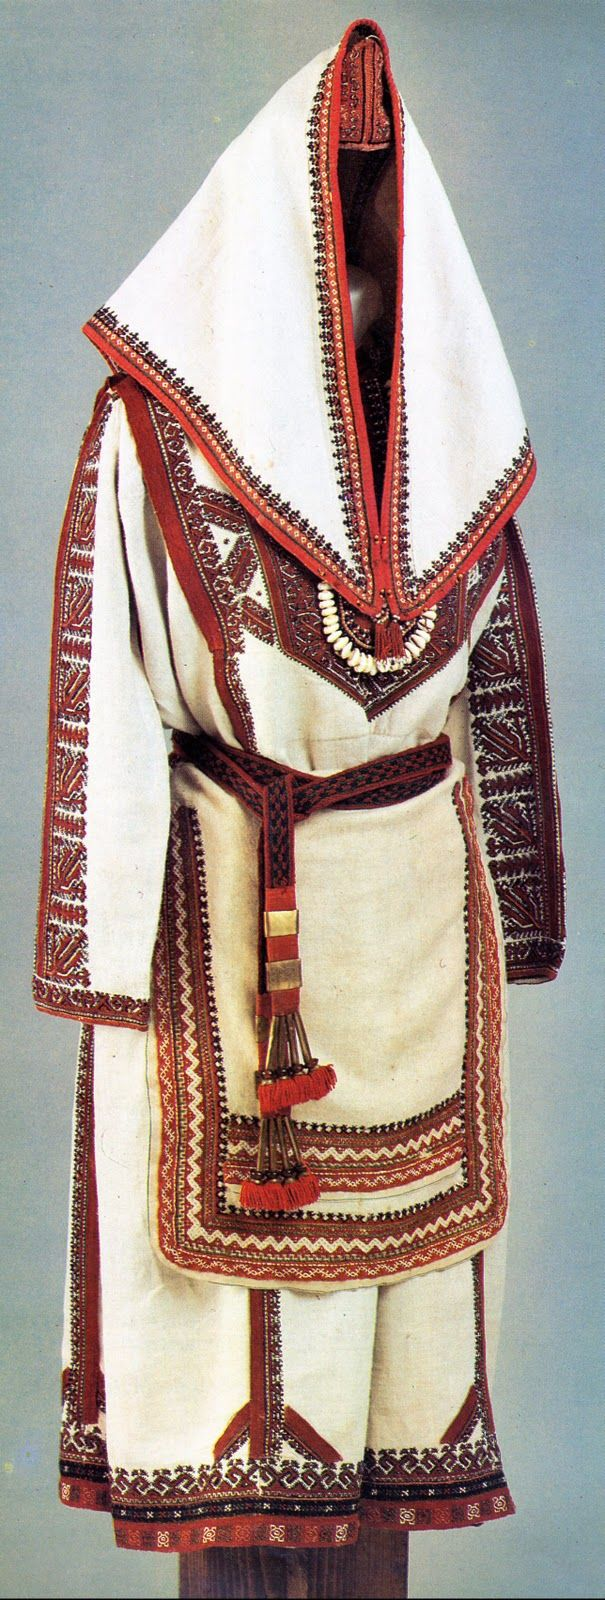 This costume is typical of one group of the Meadow Mari, called the Shymakshan Mari, who occupy the central portion of the Mari El Autonomous Region. This Costume is very rich in embroidery, and is obviously one worn for festive occasions, the headcovering shows that this is for a married woman.